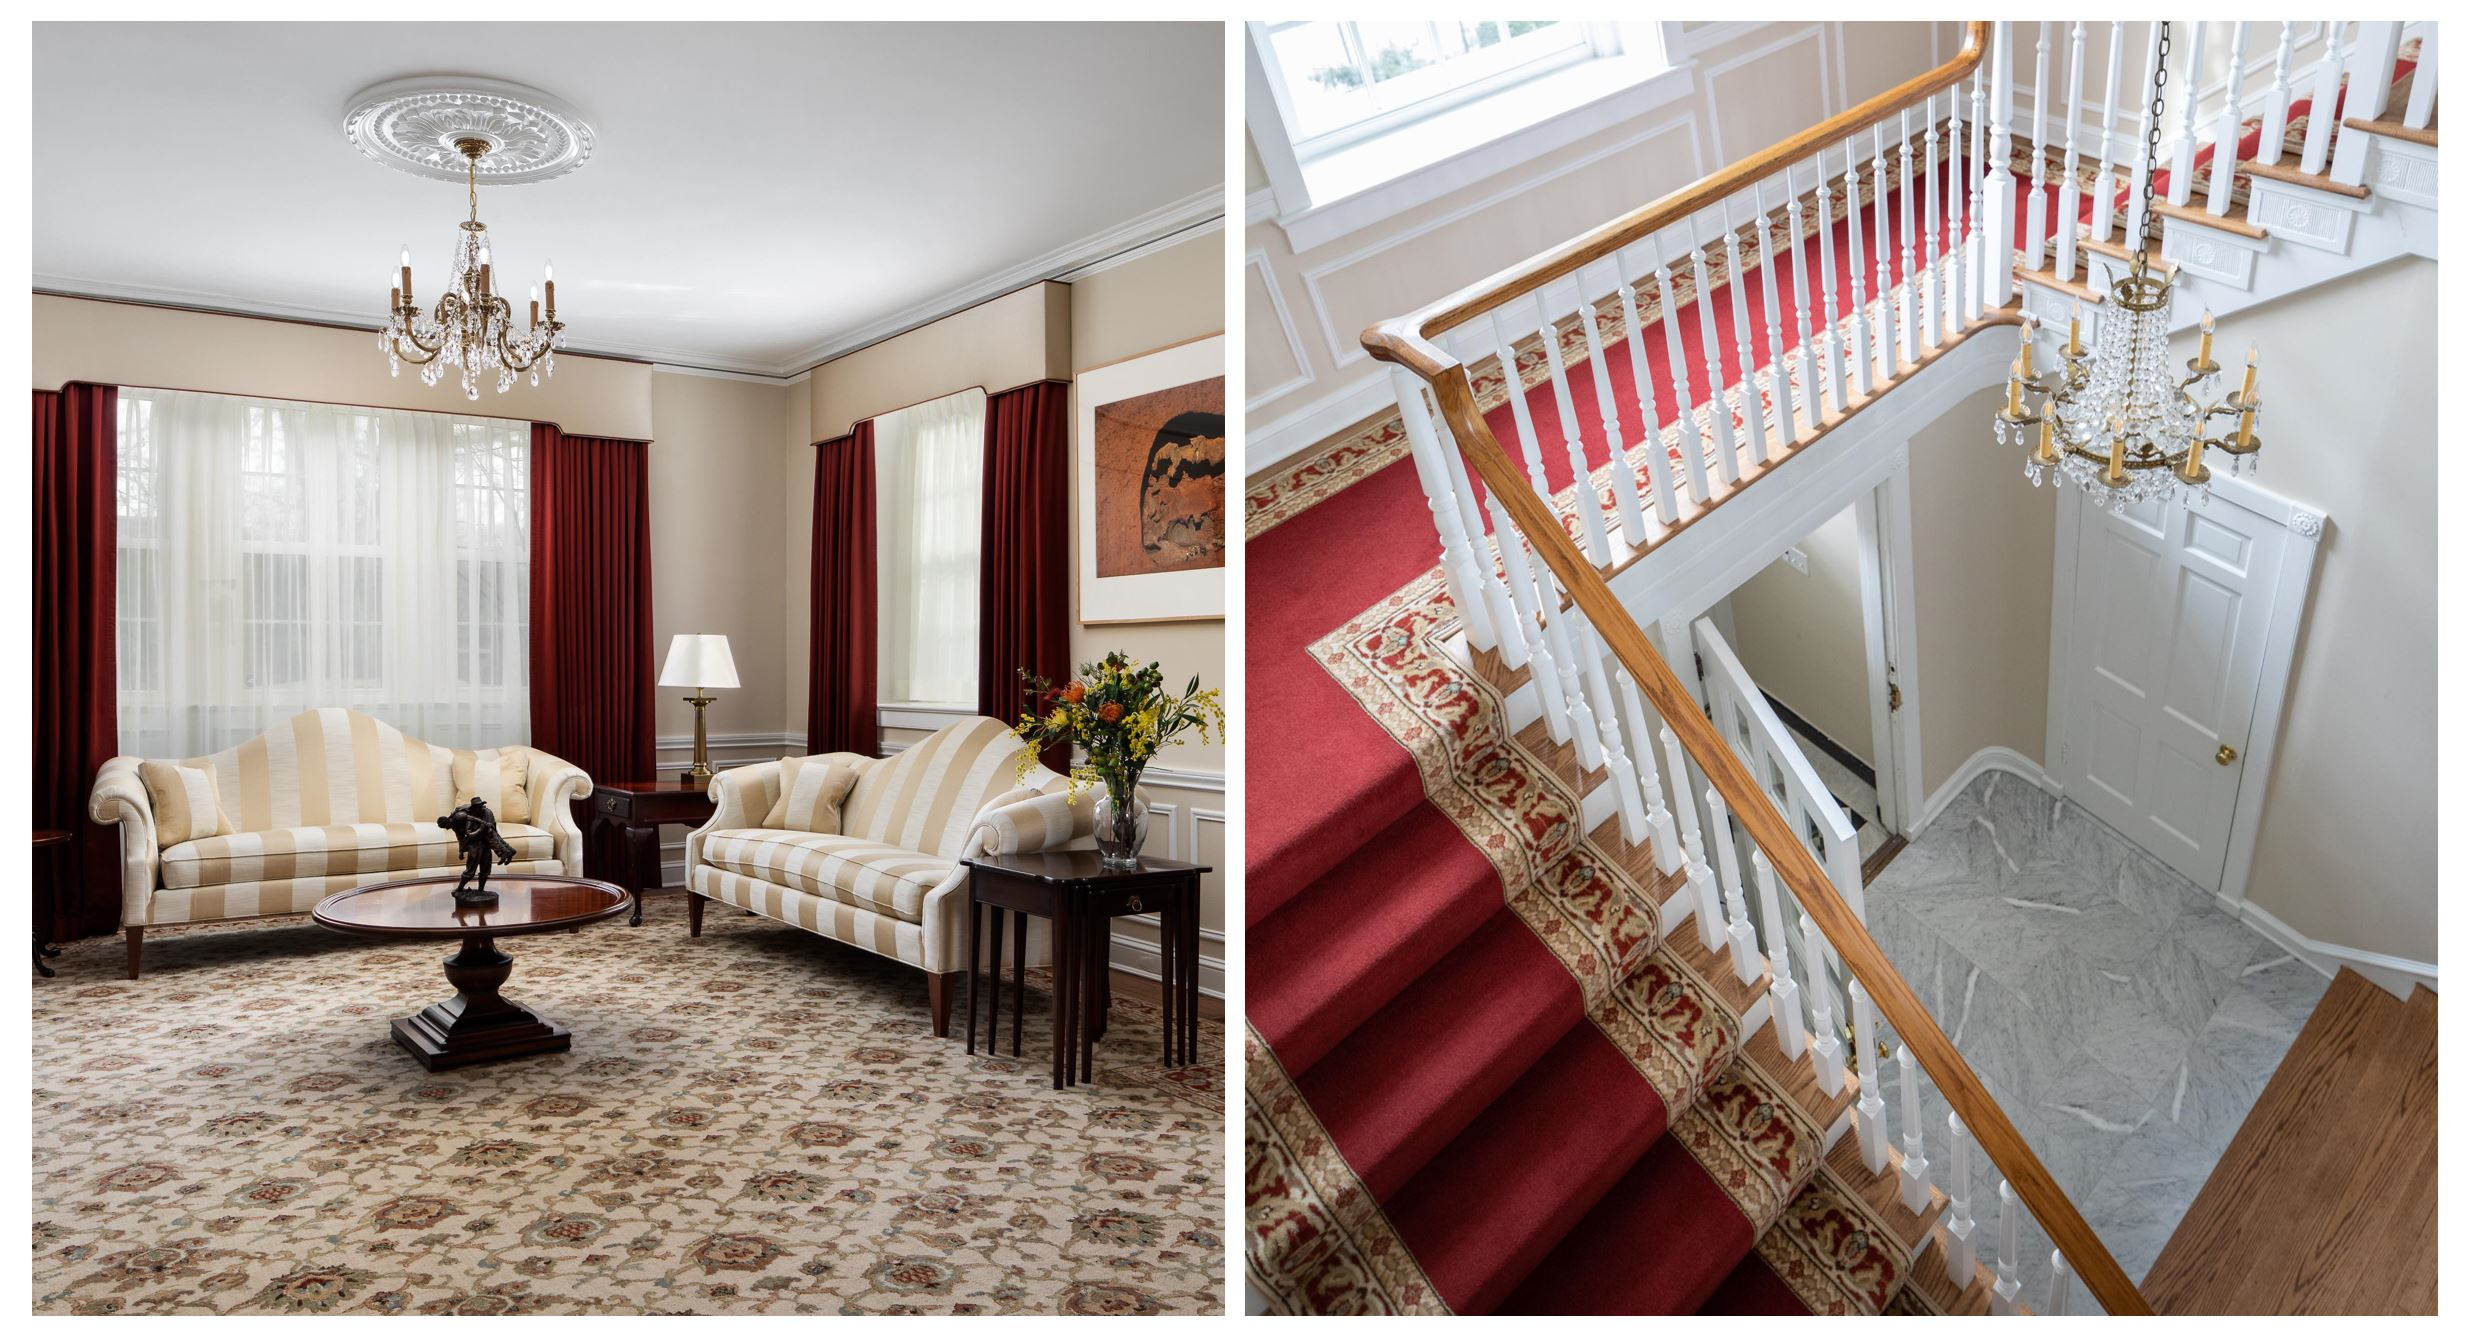 Collage of home remodeling projects with burgundy and gold designs